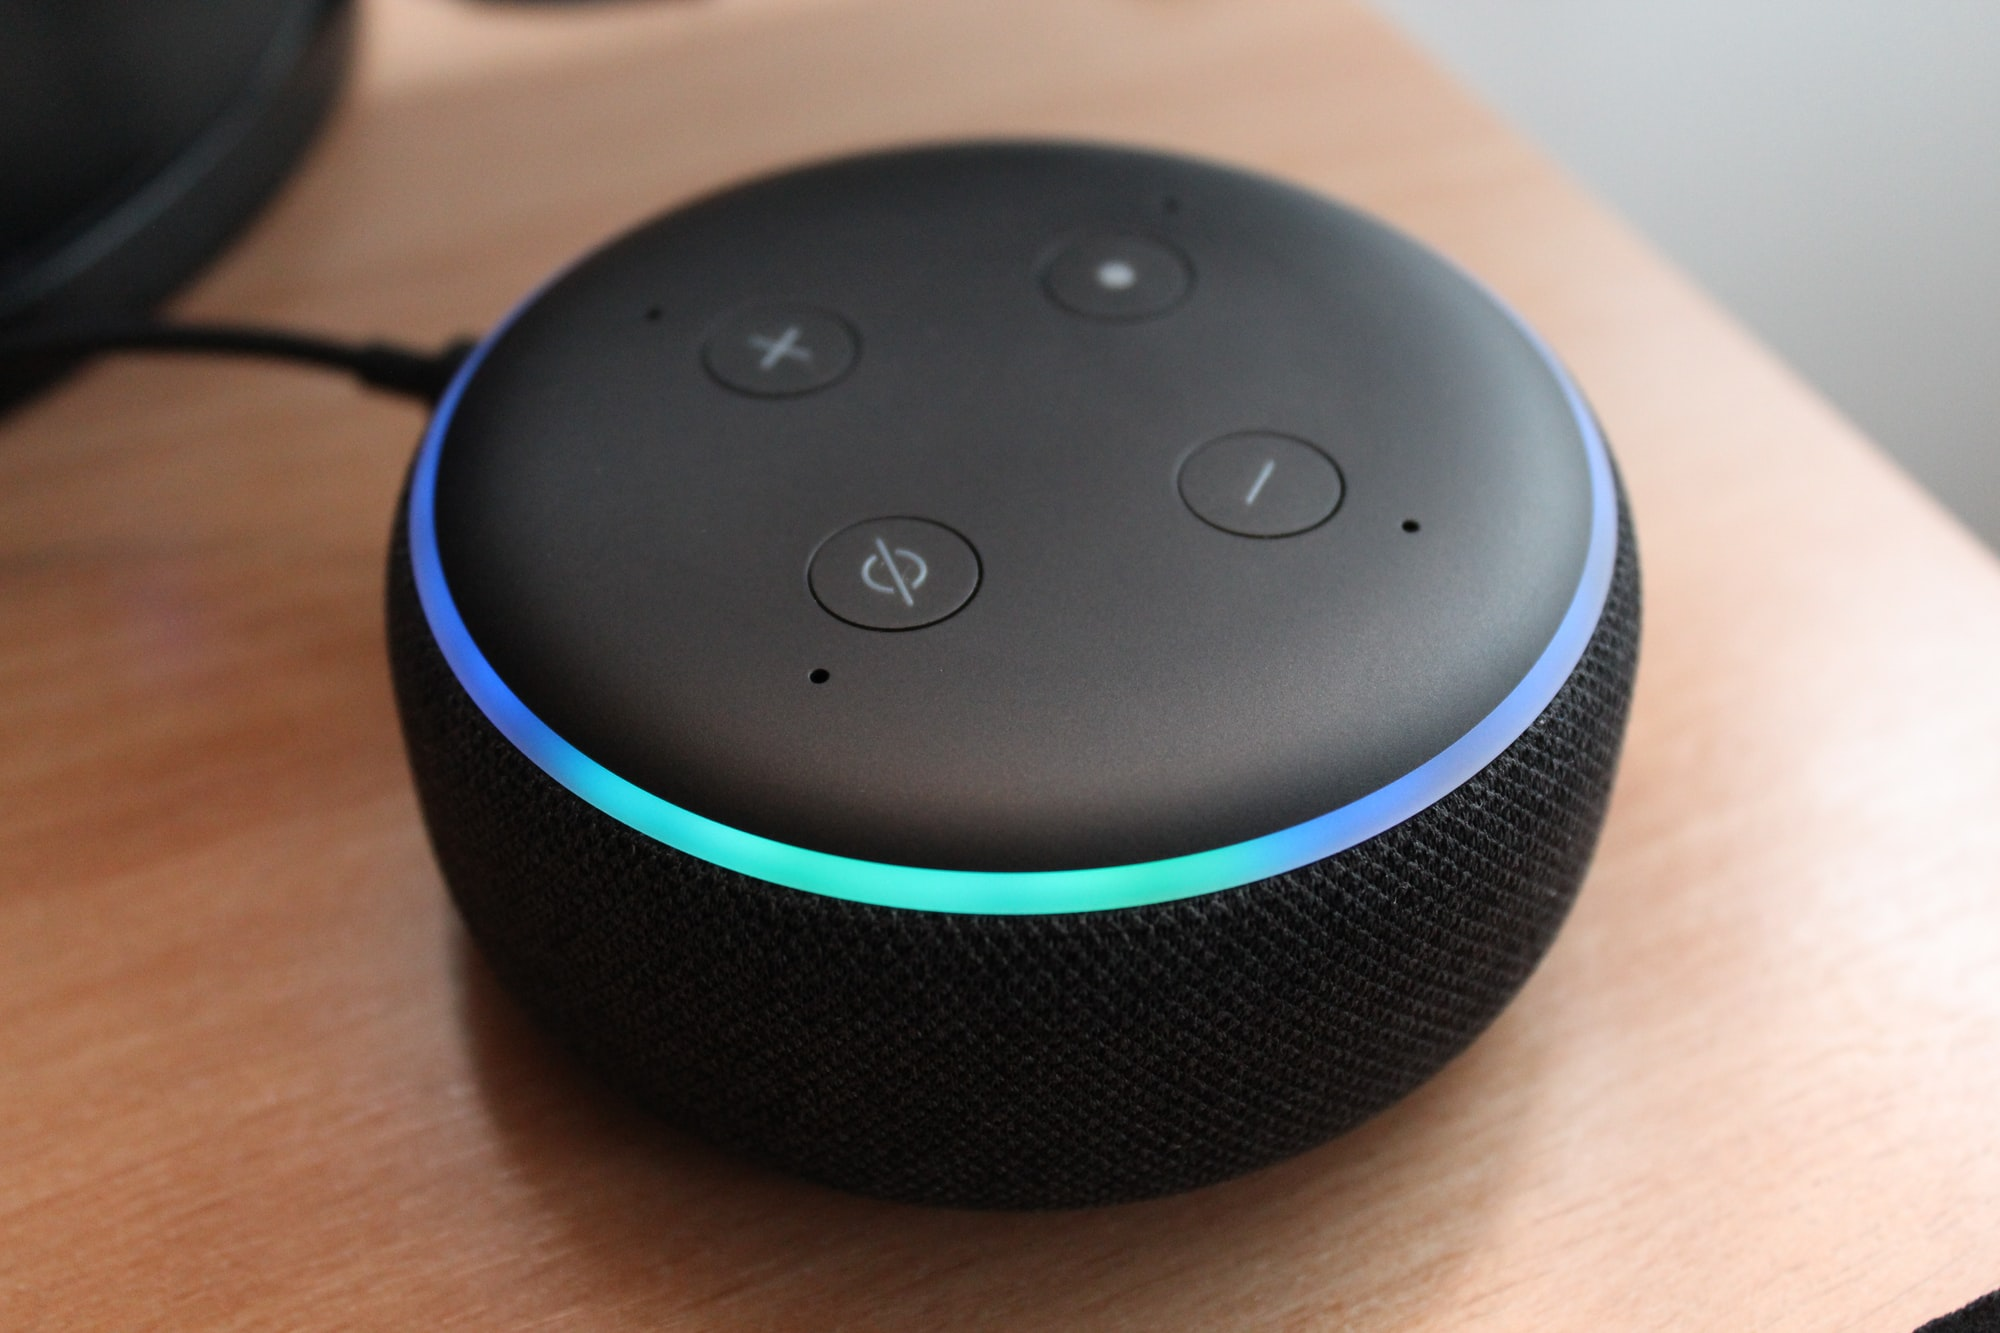 🔗 After five years of Amazon's Alexa, why isn't it better?